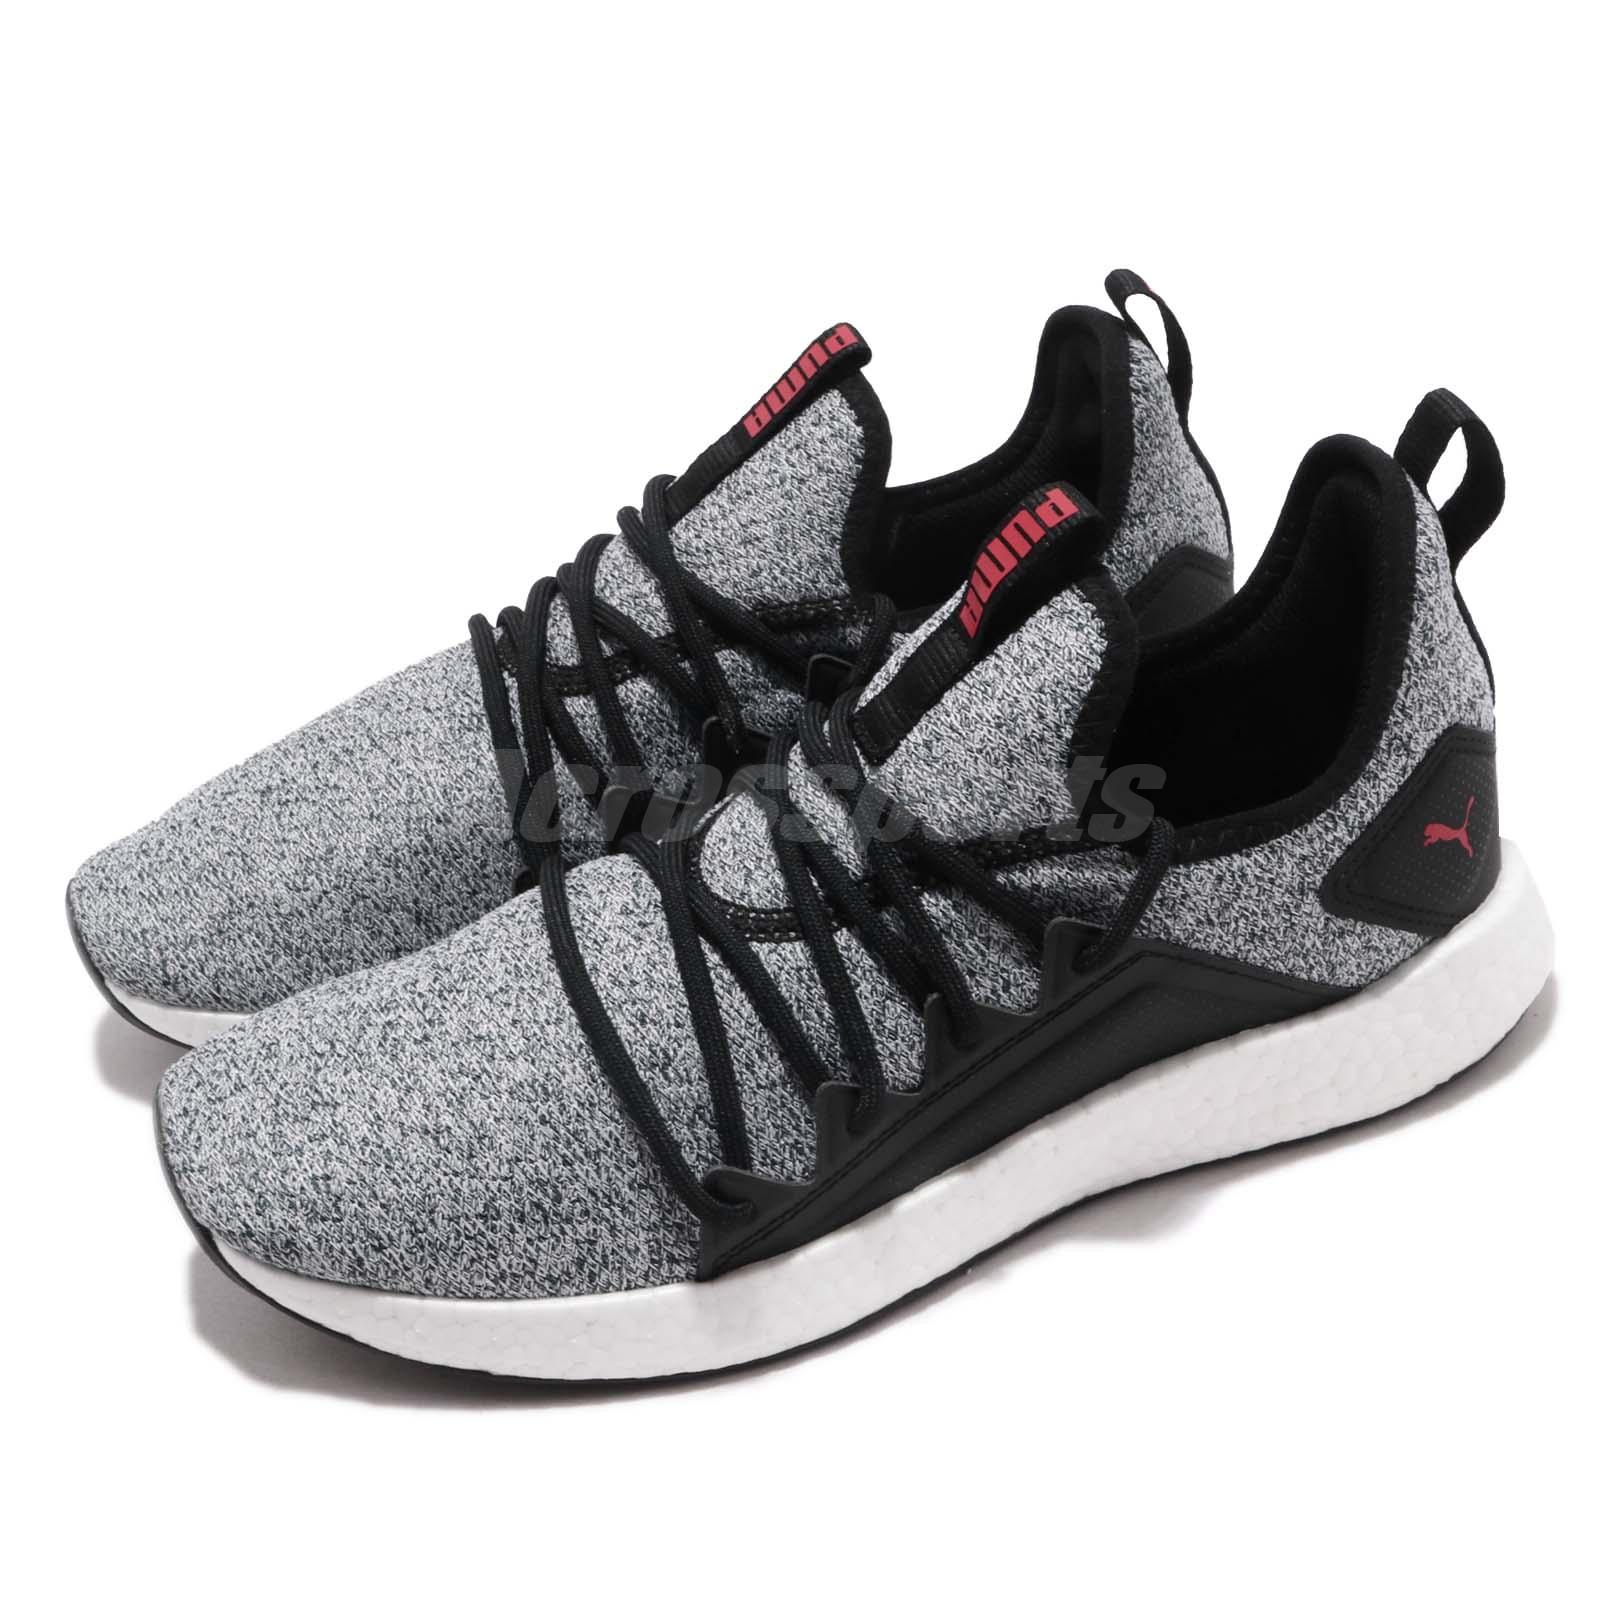 huge discount 461bc 093e0 Details about Puma NRGY Neko Knit Black White High Risk Red Men Running  Shoe Sneaker 191093-05